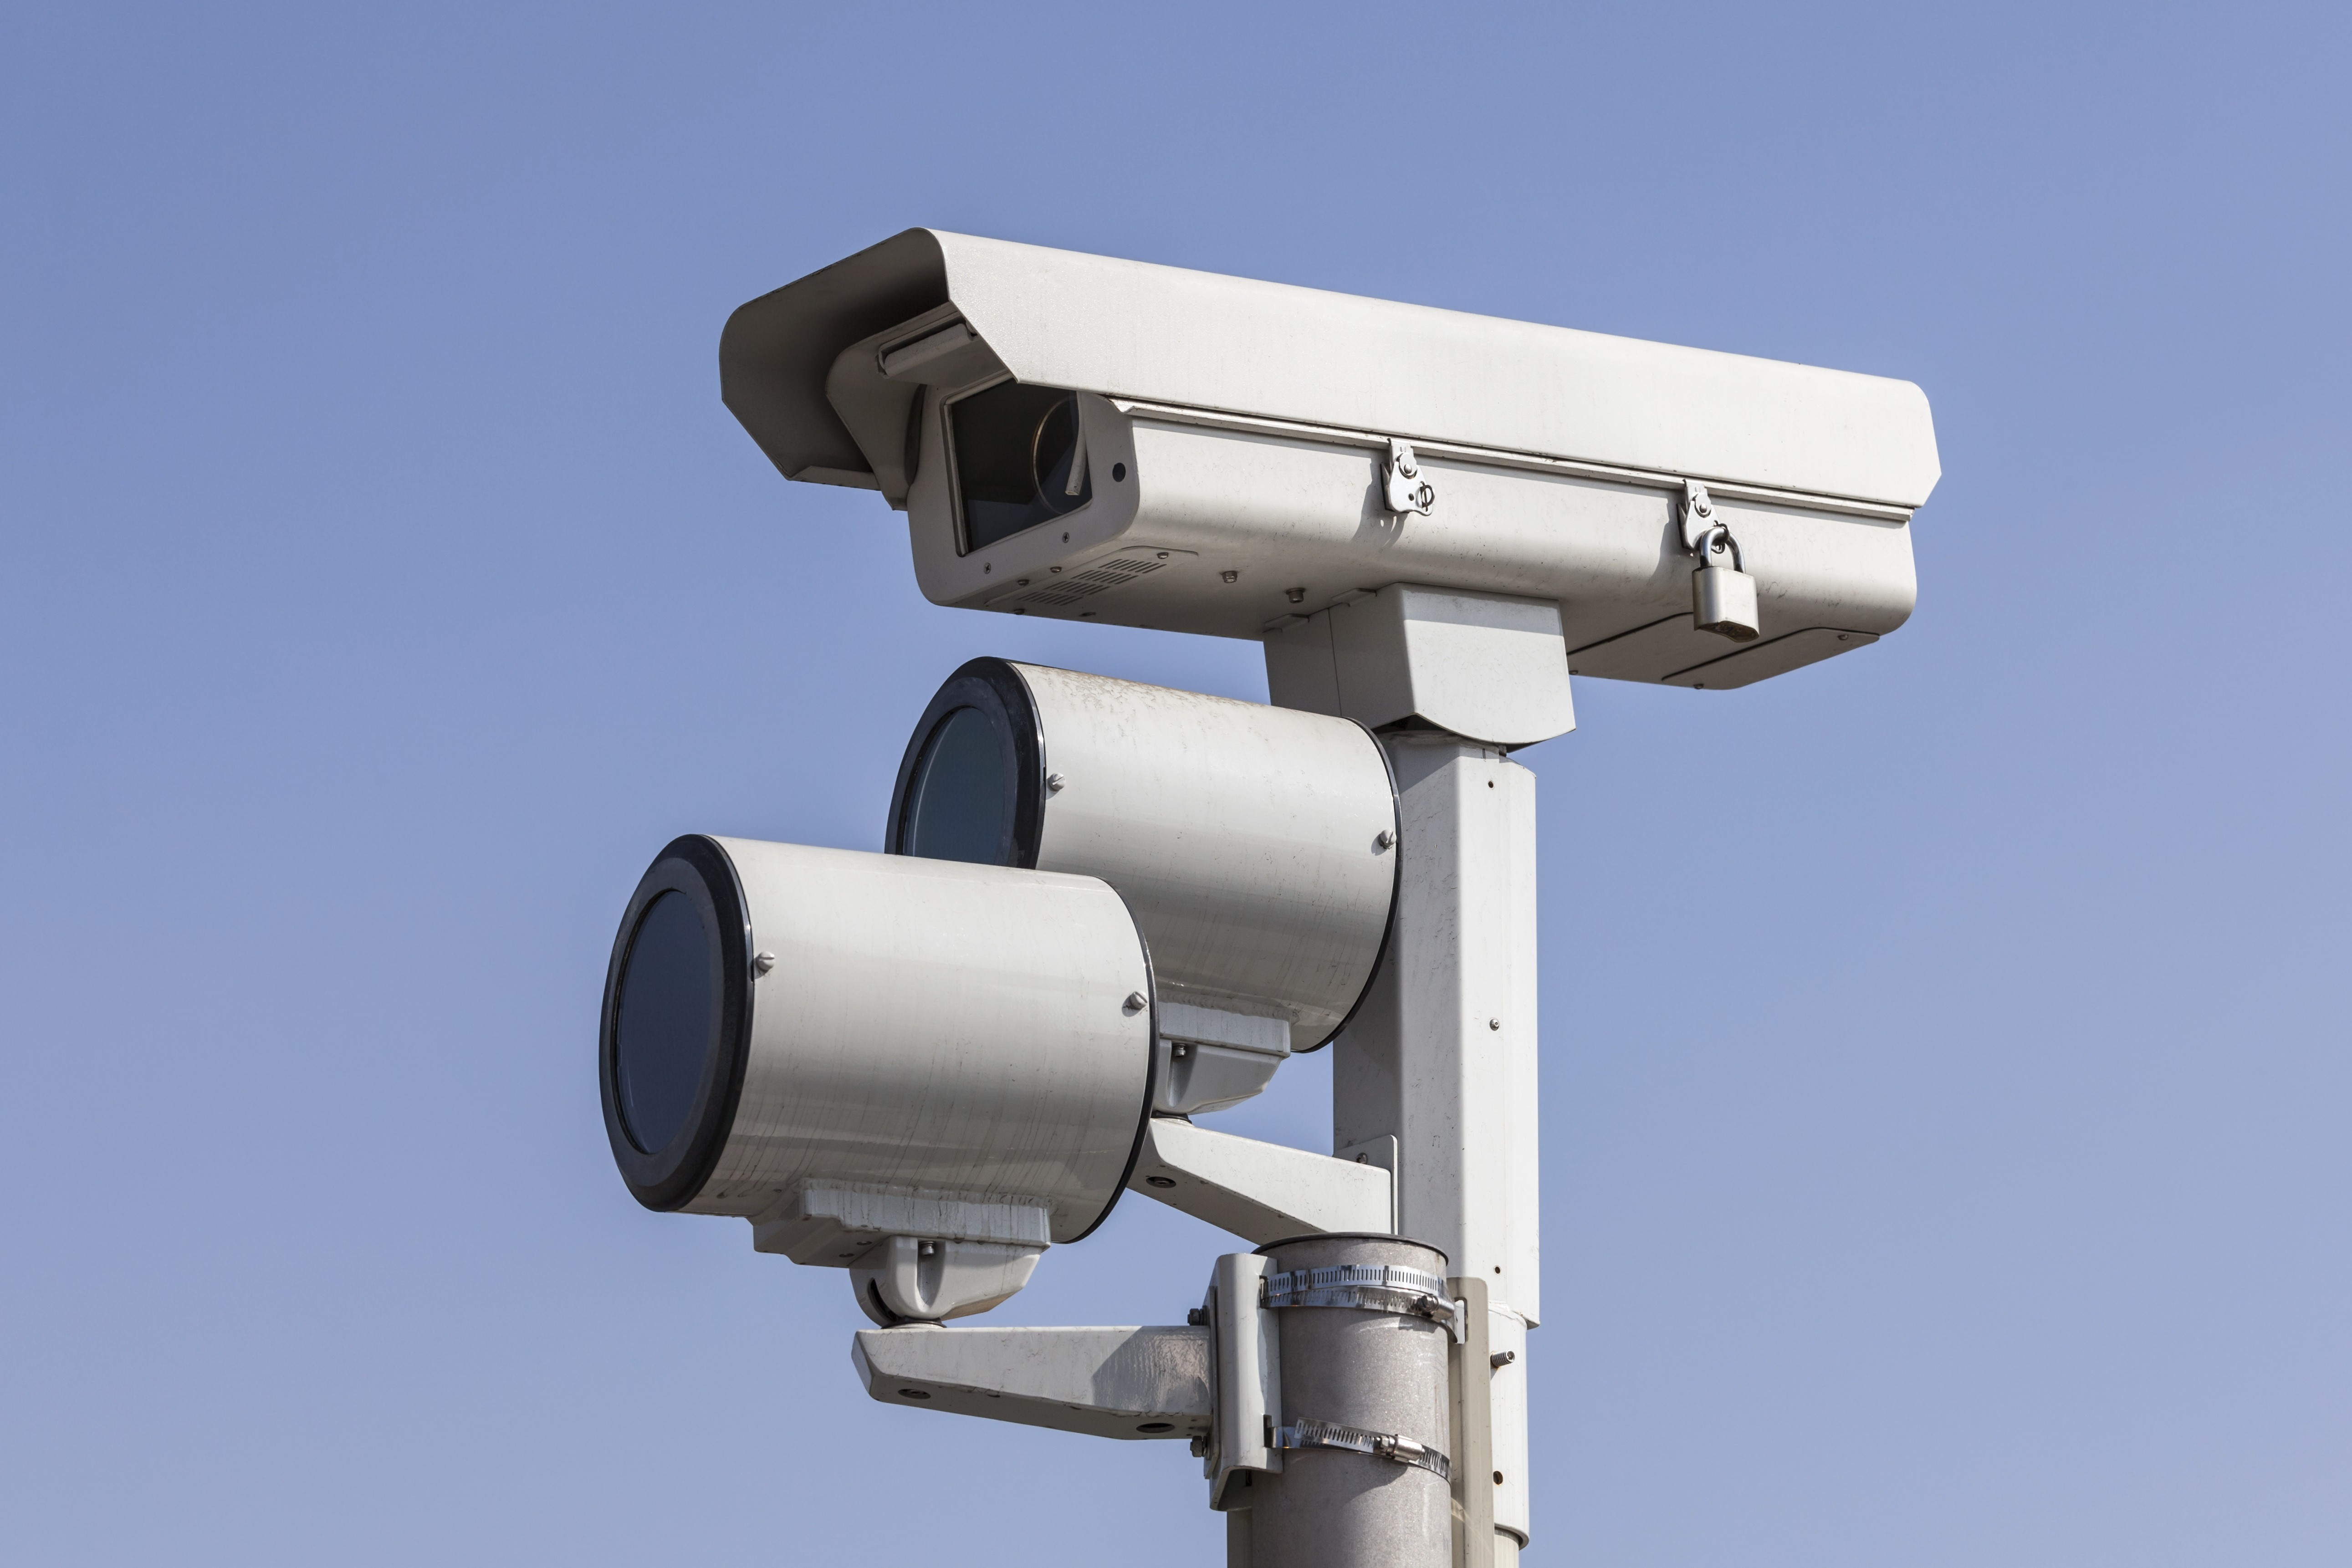 Florida will once again try to get rid of red-light cameras